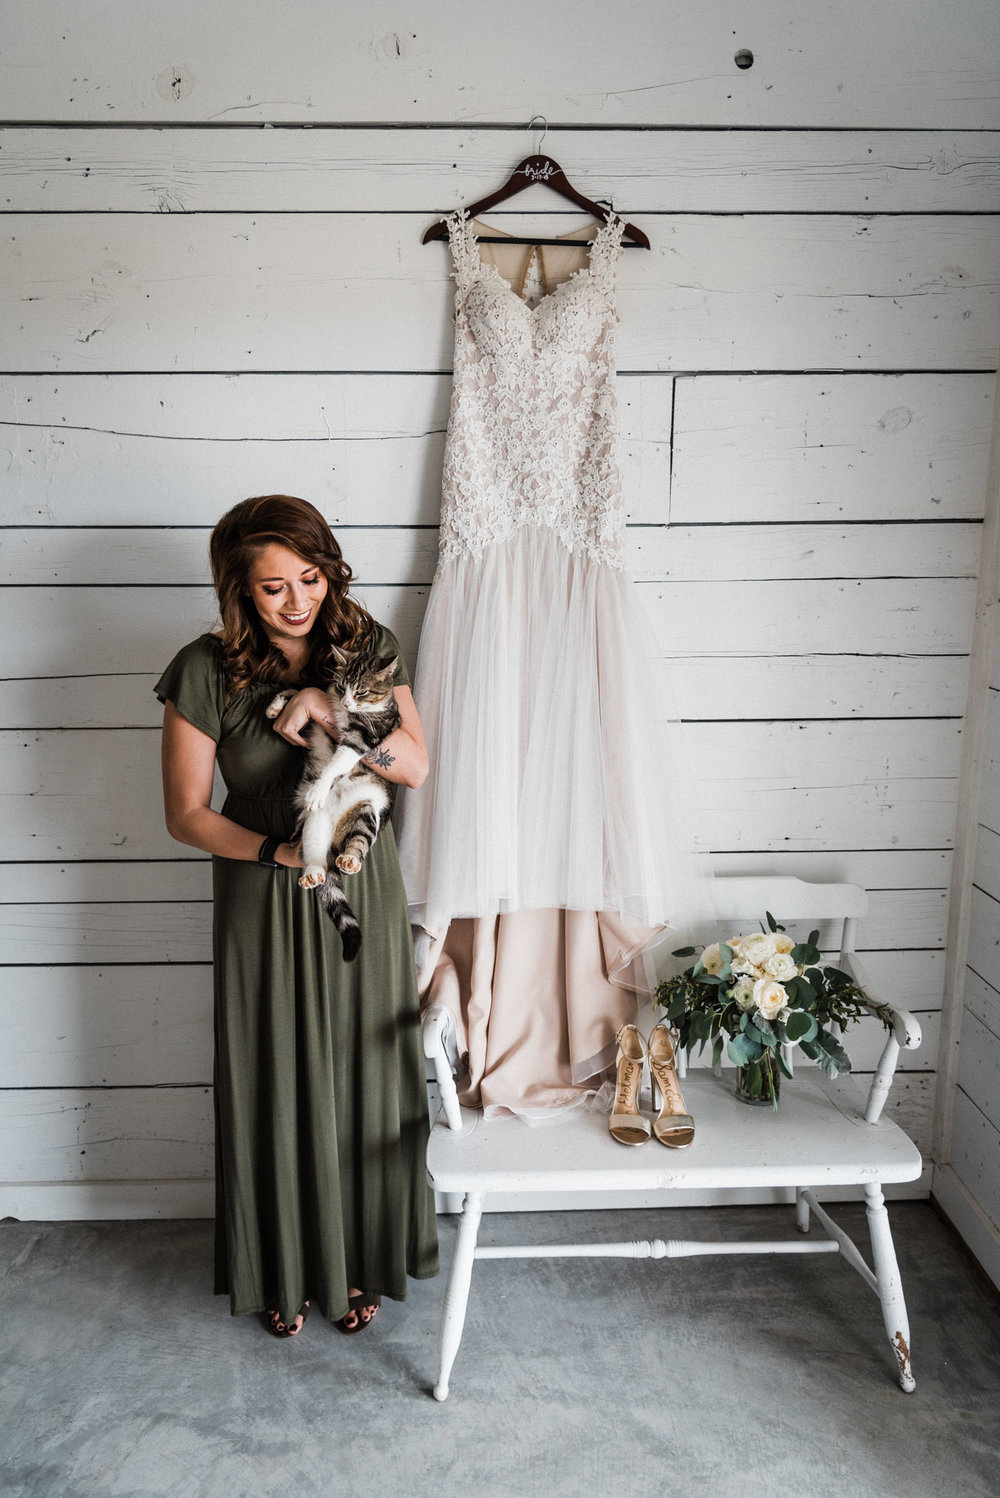 Kindred Barn Bridal Details - Tanner Burge Photography.jpg